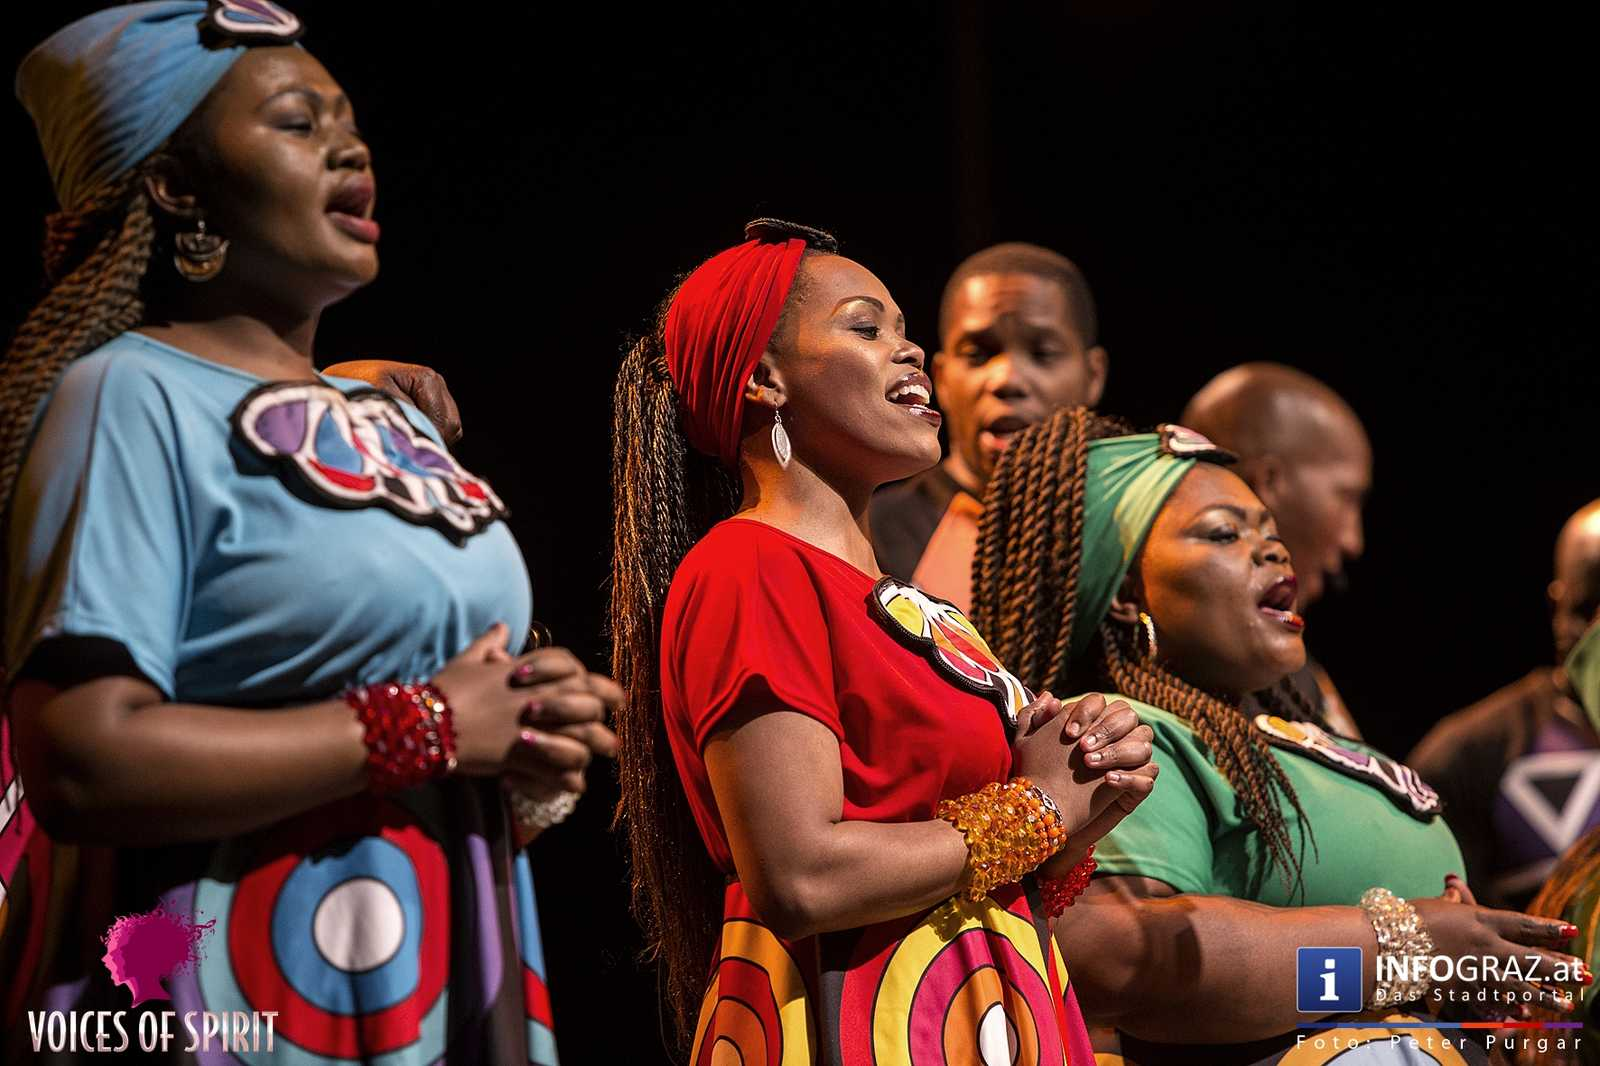 soweto gospel choir internationales chorfestival statdthalle graz voices of spirit eroeffnung festivals 2016 019